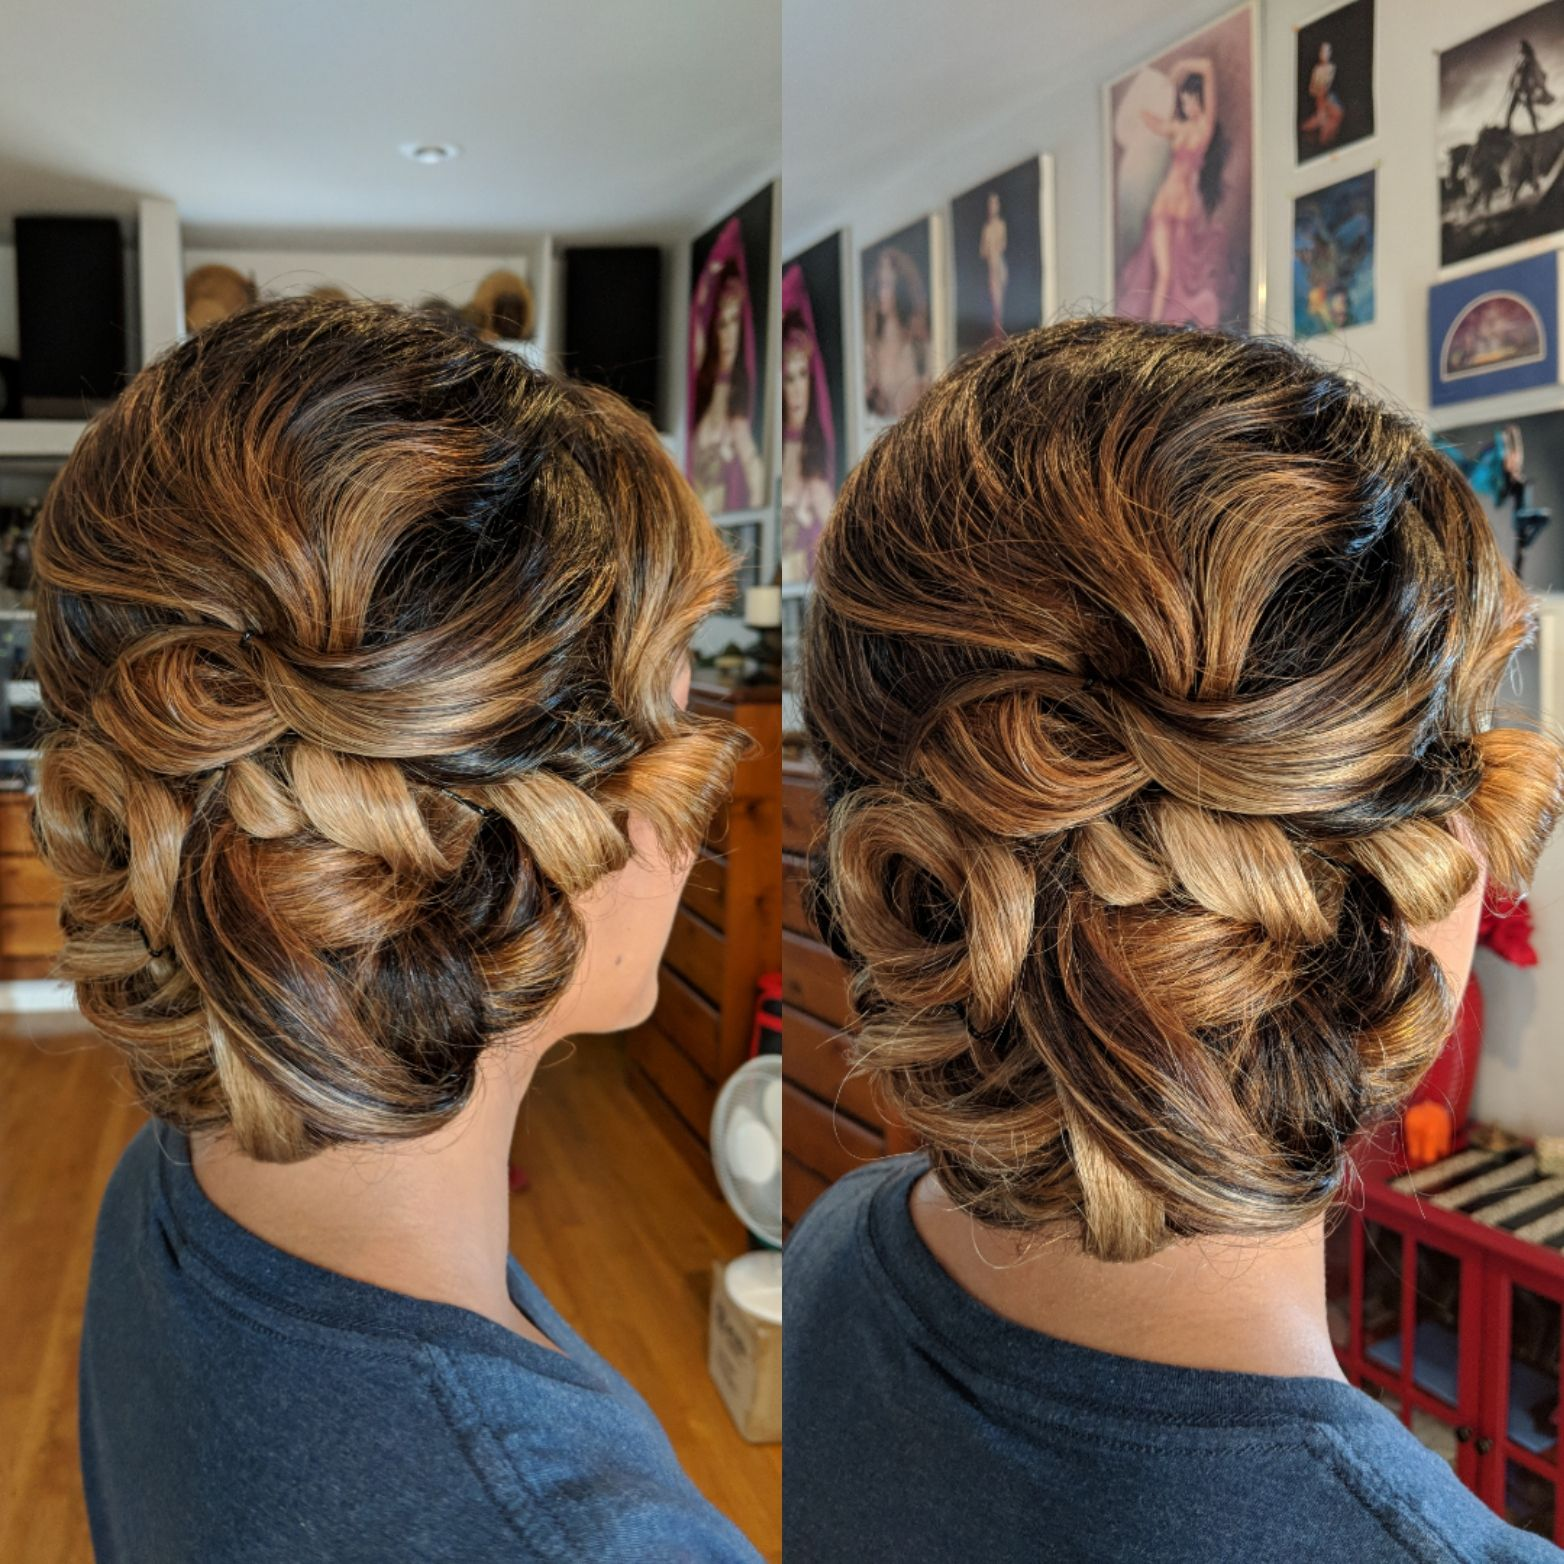 Spectacular Braided Updo It Turned Out With A Slightly Vintage